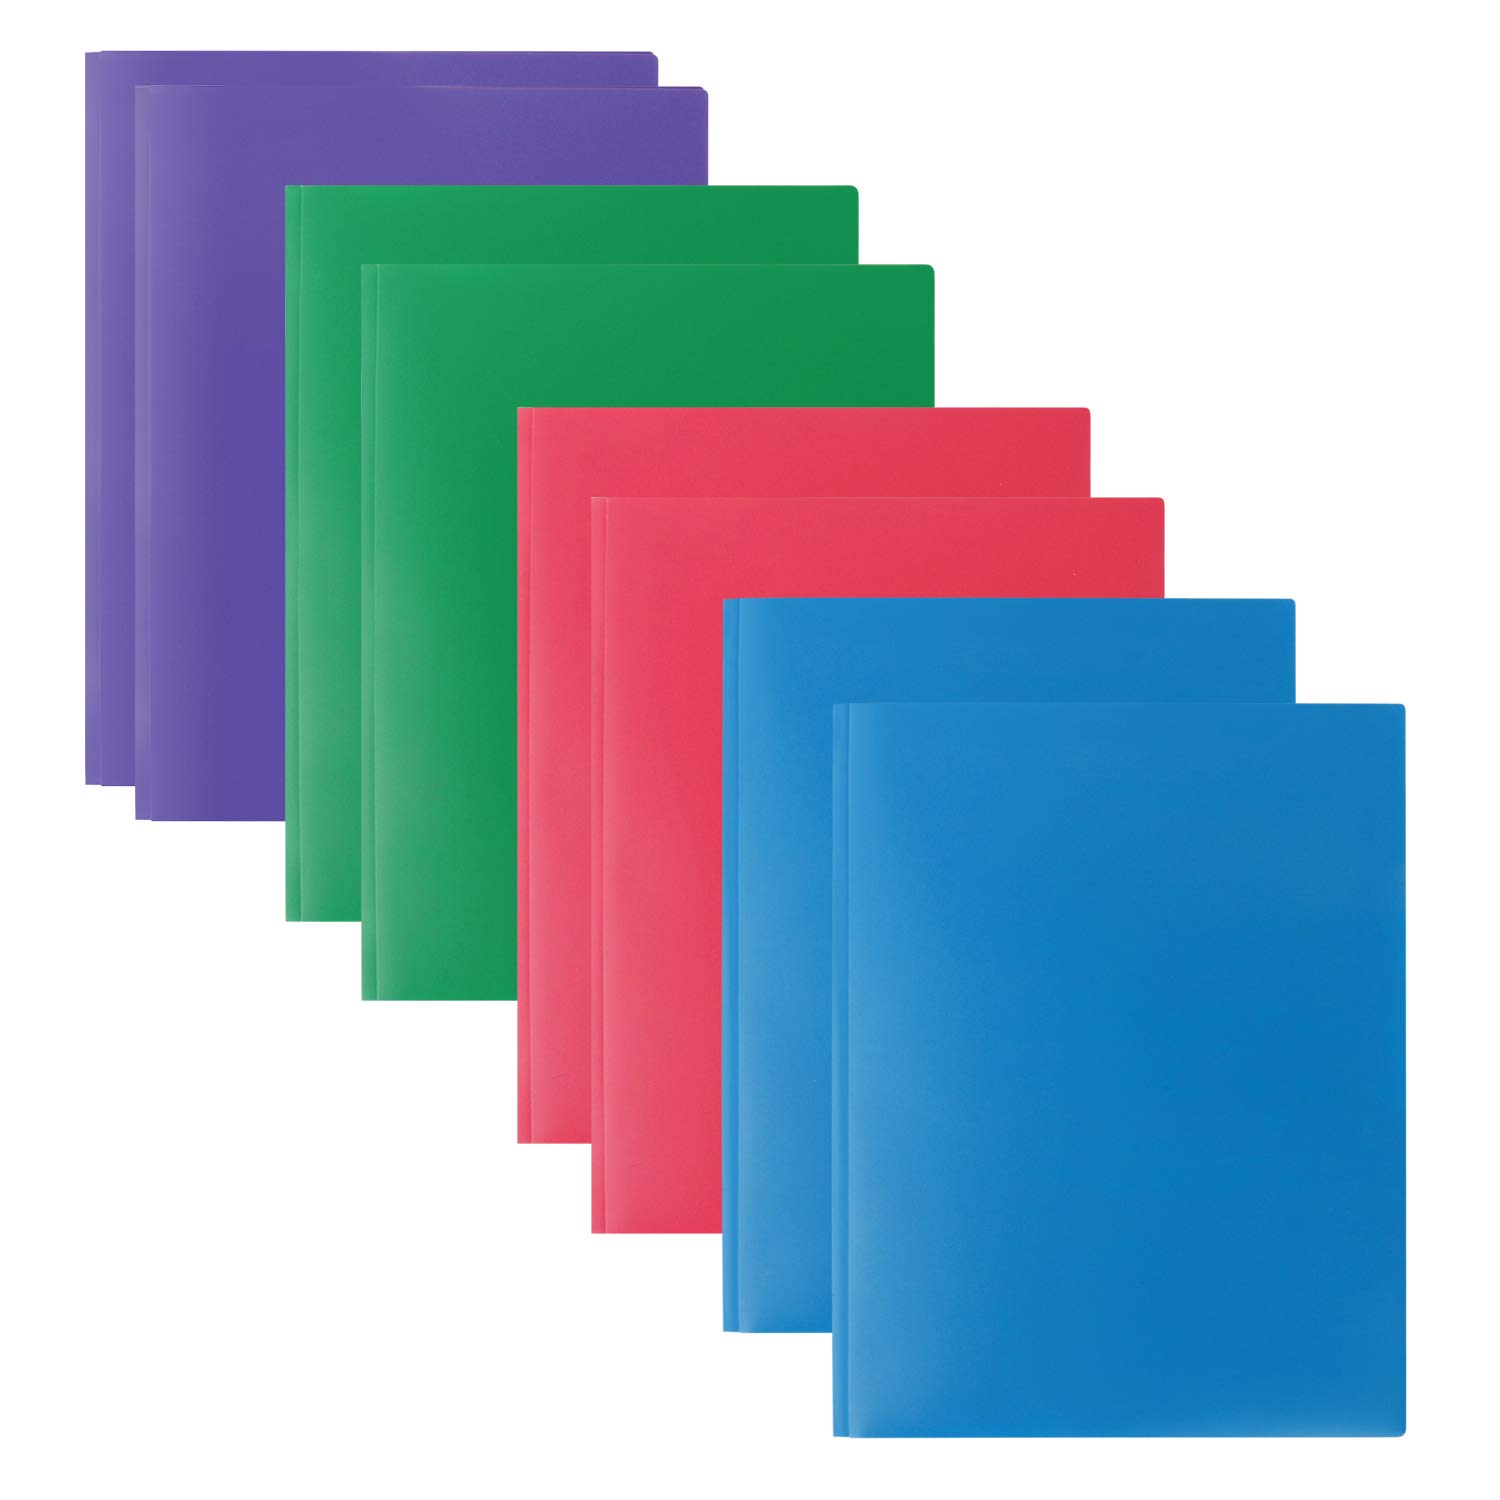 Plastic Folders with 2 Pockets and 3 prongs,8 Pack Multicolor Plastic Two Pocket Folders with Prongs and Card Holder, 2 Pocket Plastic folders for School, Home, and Work, 8 Pack Plastic Folders by INFUN